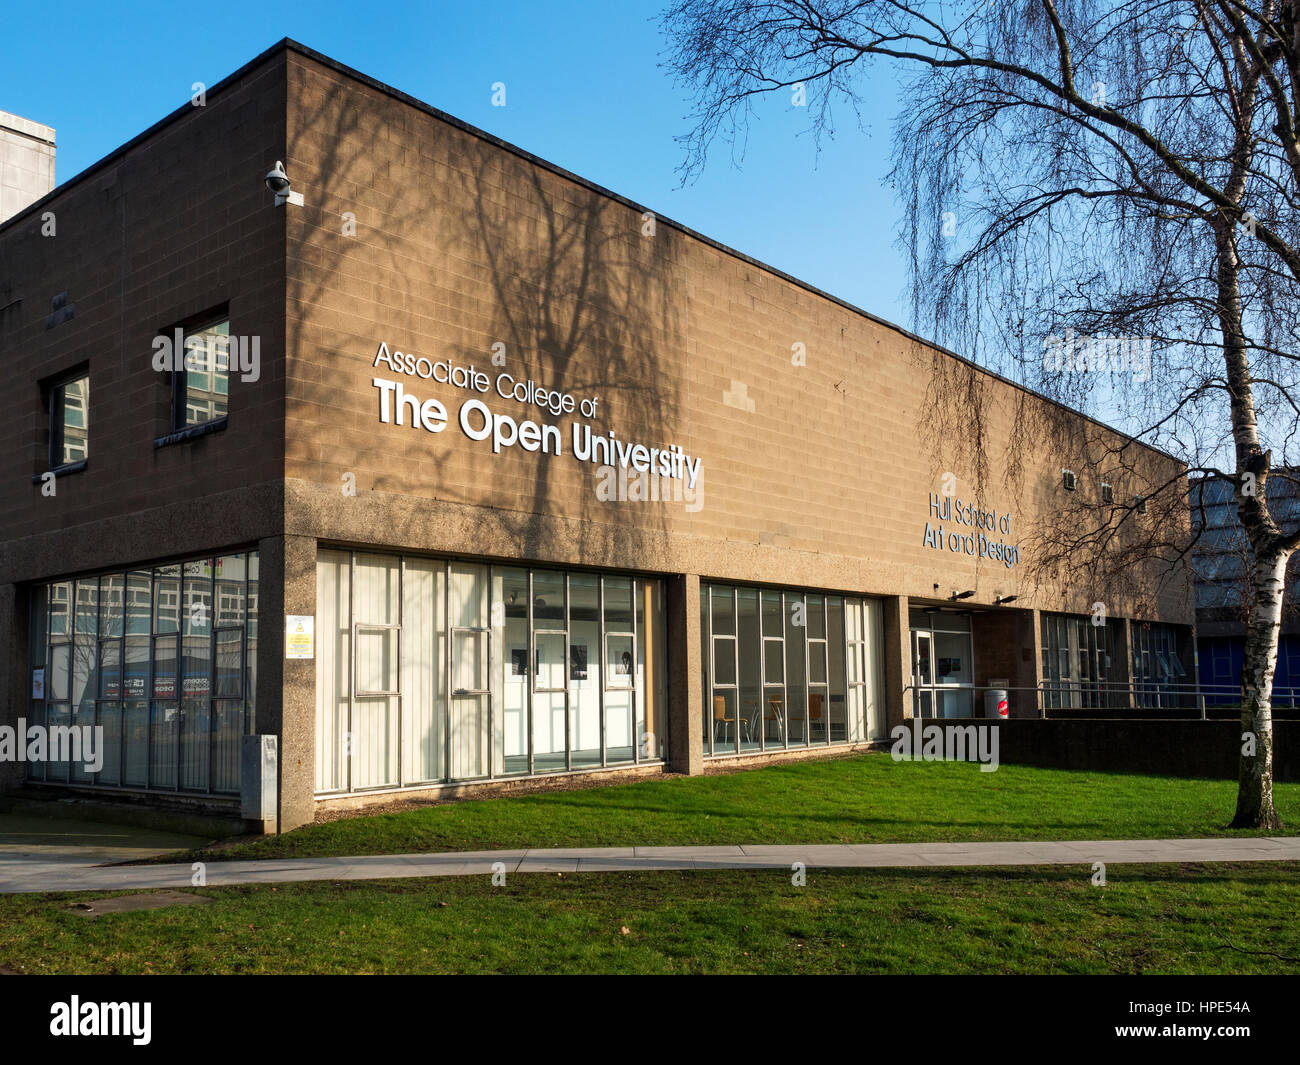 Hull School of Art and Design Associate College of the Open University Hull Yorkshire England - Stock Image